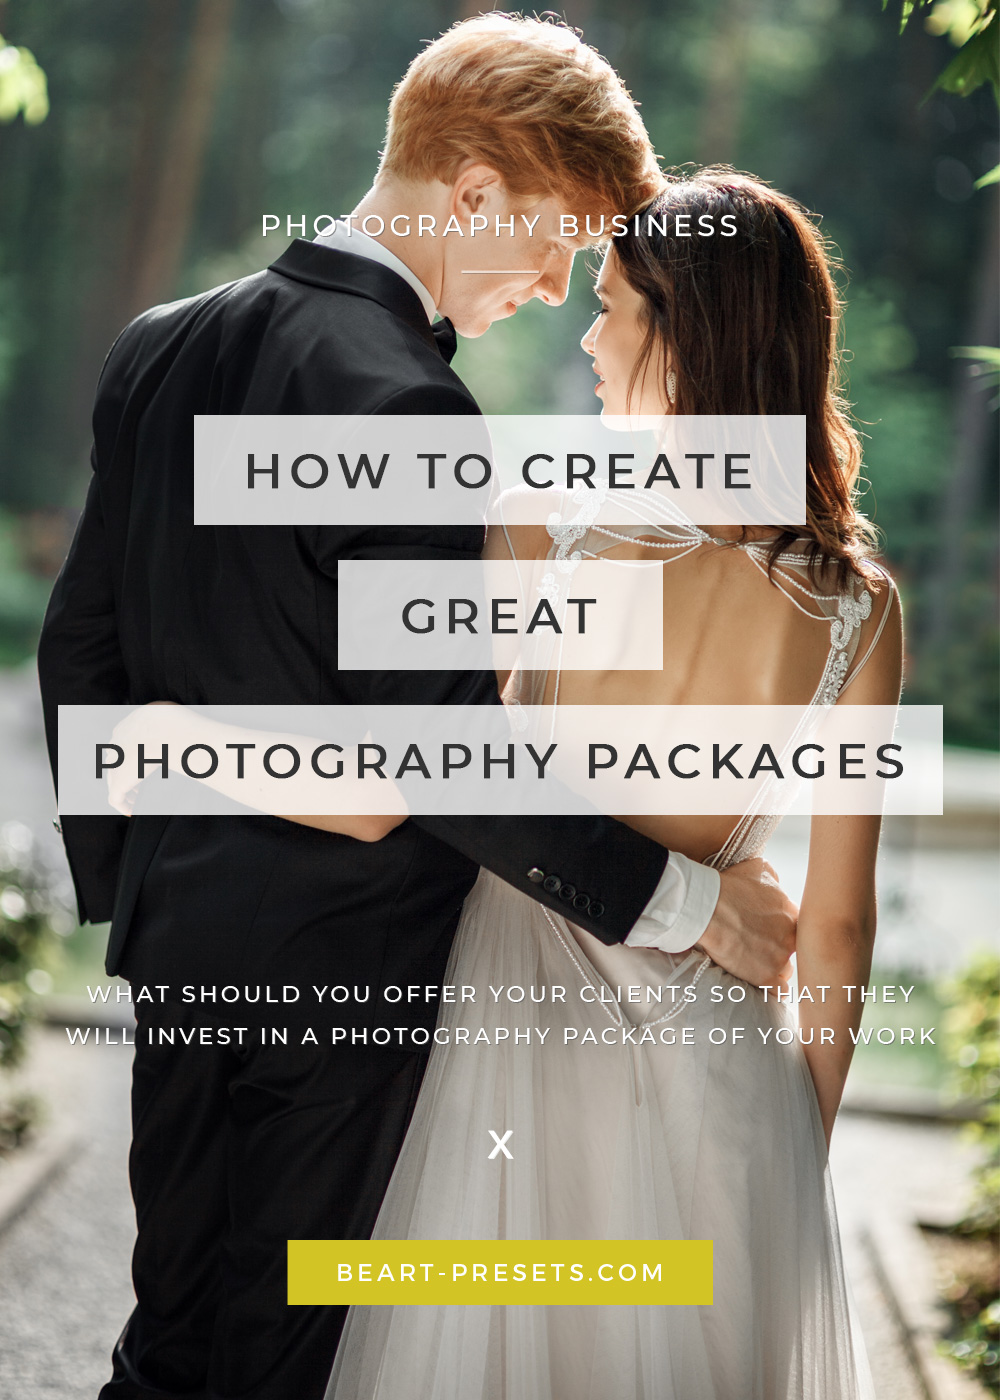 HOW-TO-CREATE-GREAT-PHOTOGRAPHY-PACKAGES